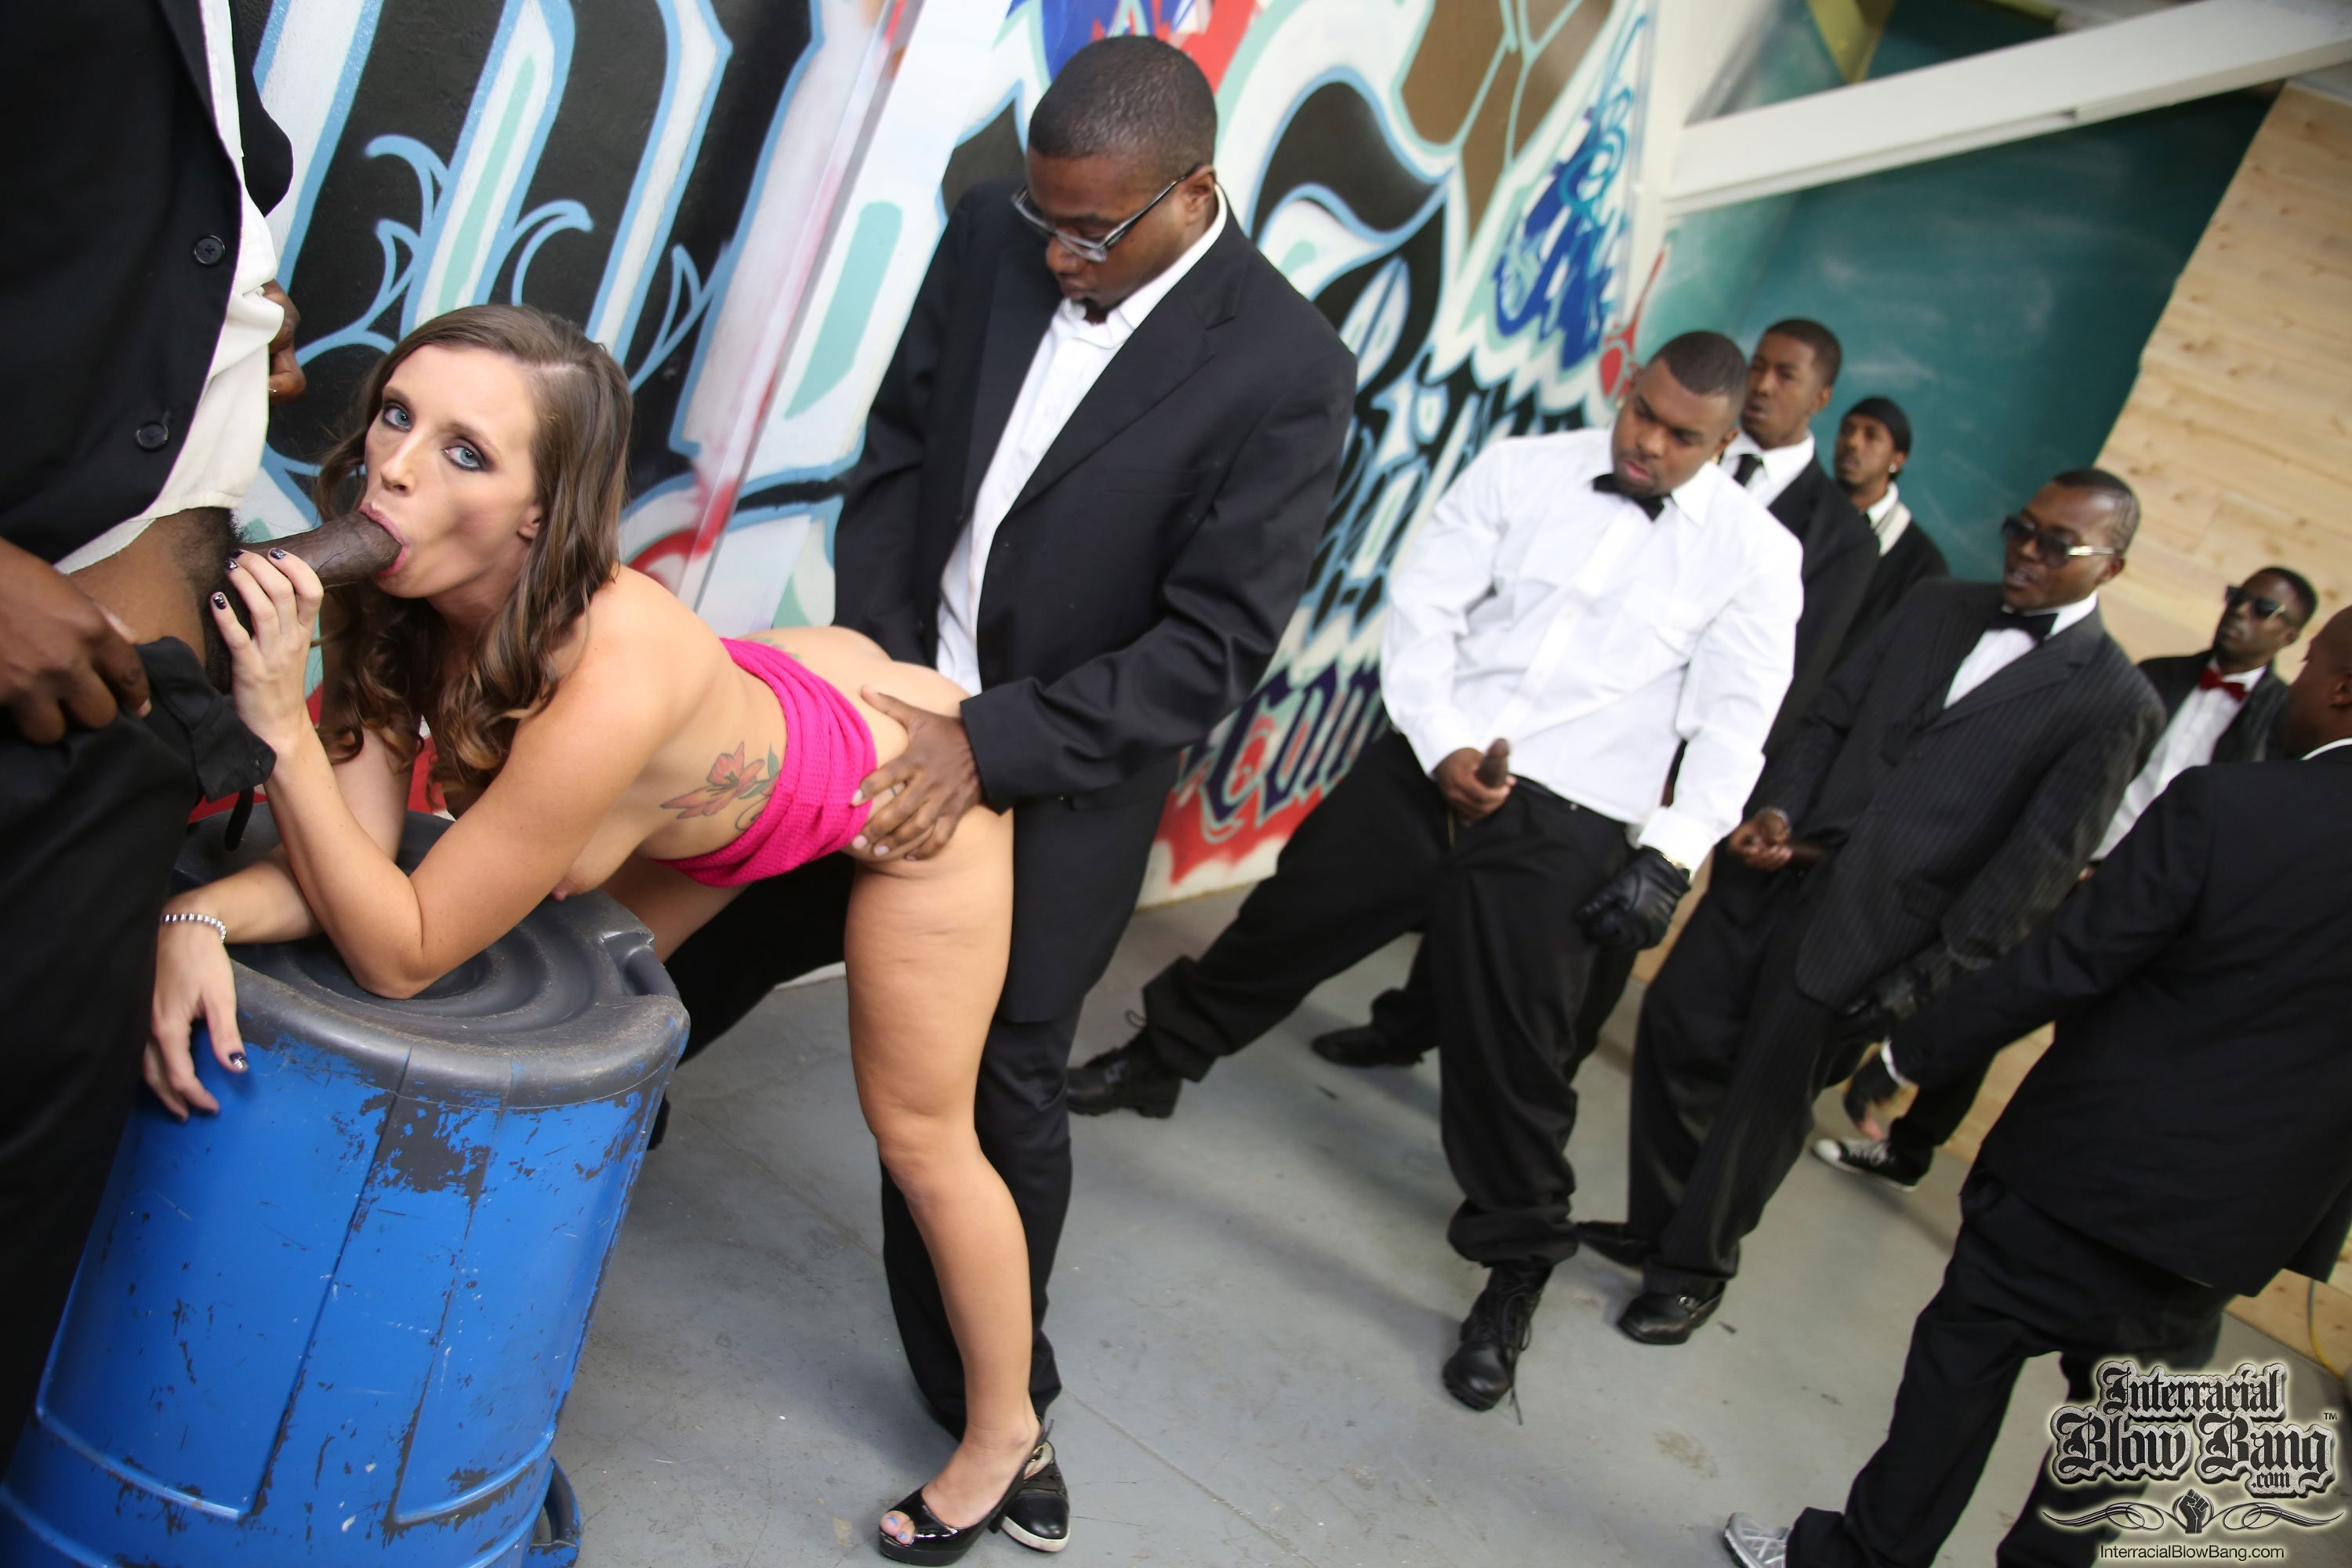 Home sex vidios of drunk girls getting fucked